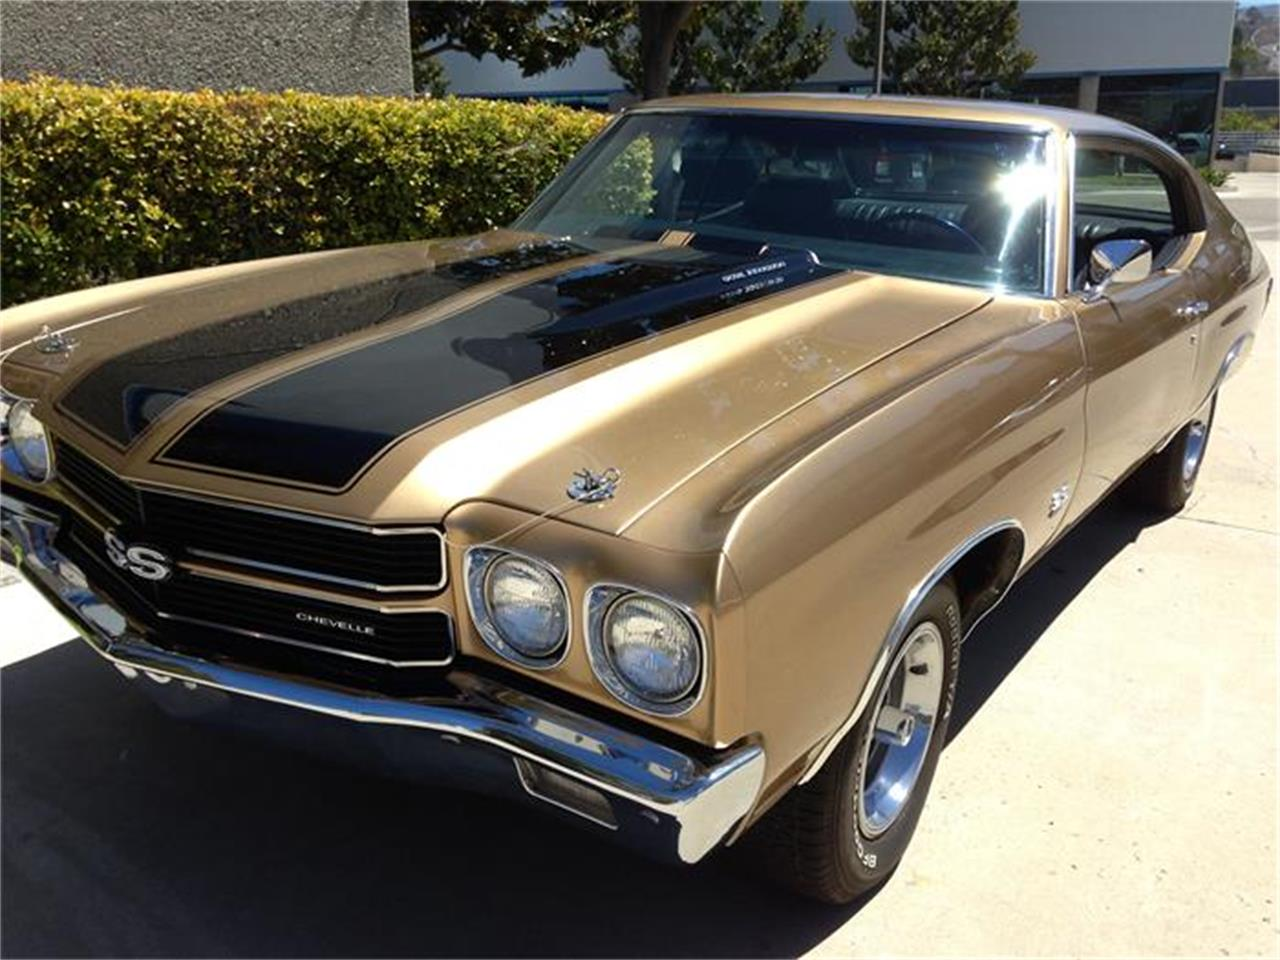 Large Picture of Classic '70 Chevelle SS located in Spring Valley California - $79,850.00 Offered by Affordable VIP Classics - CDP2